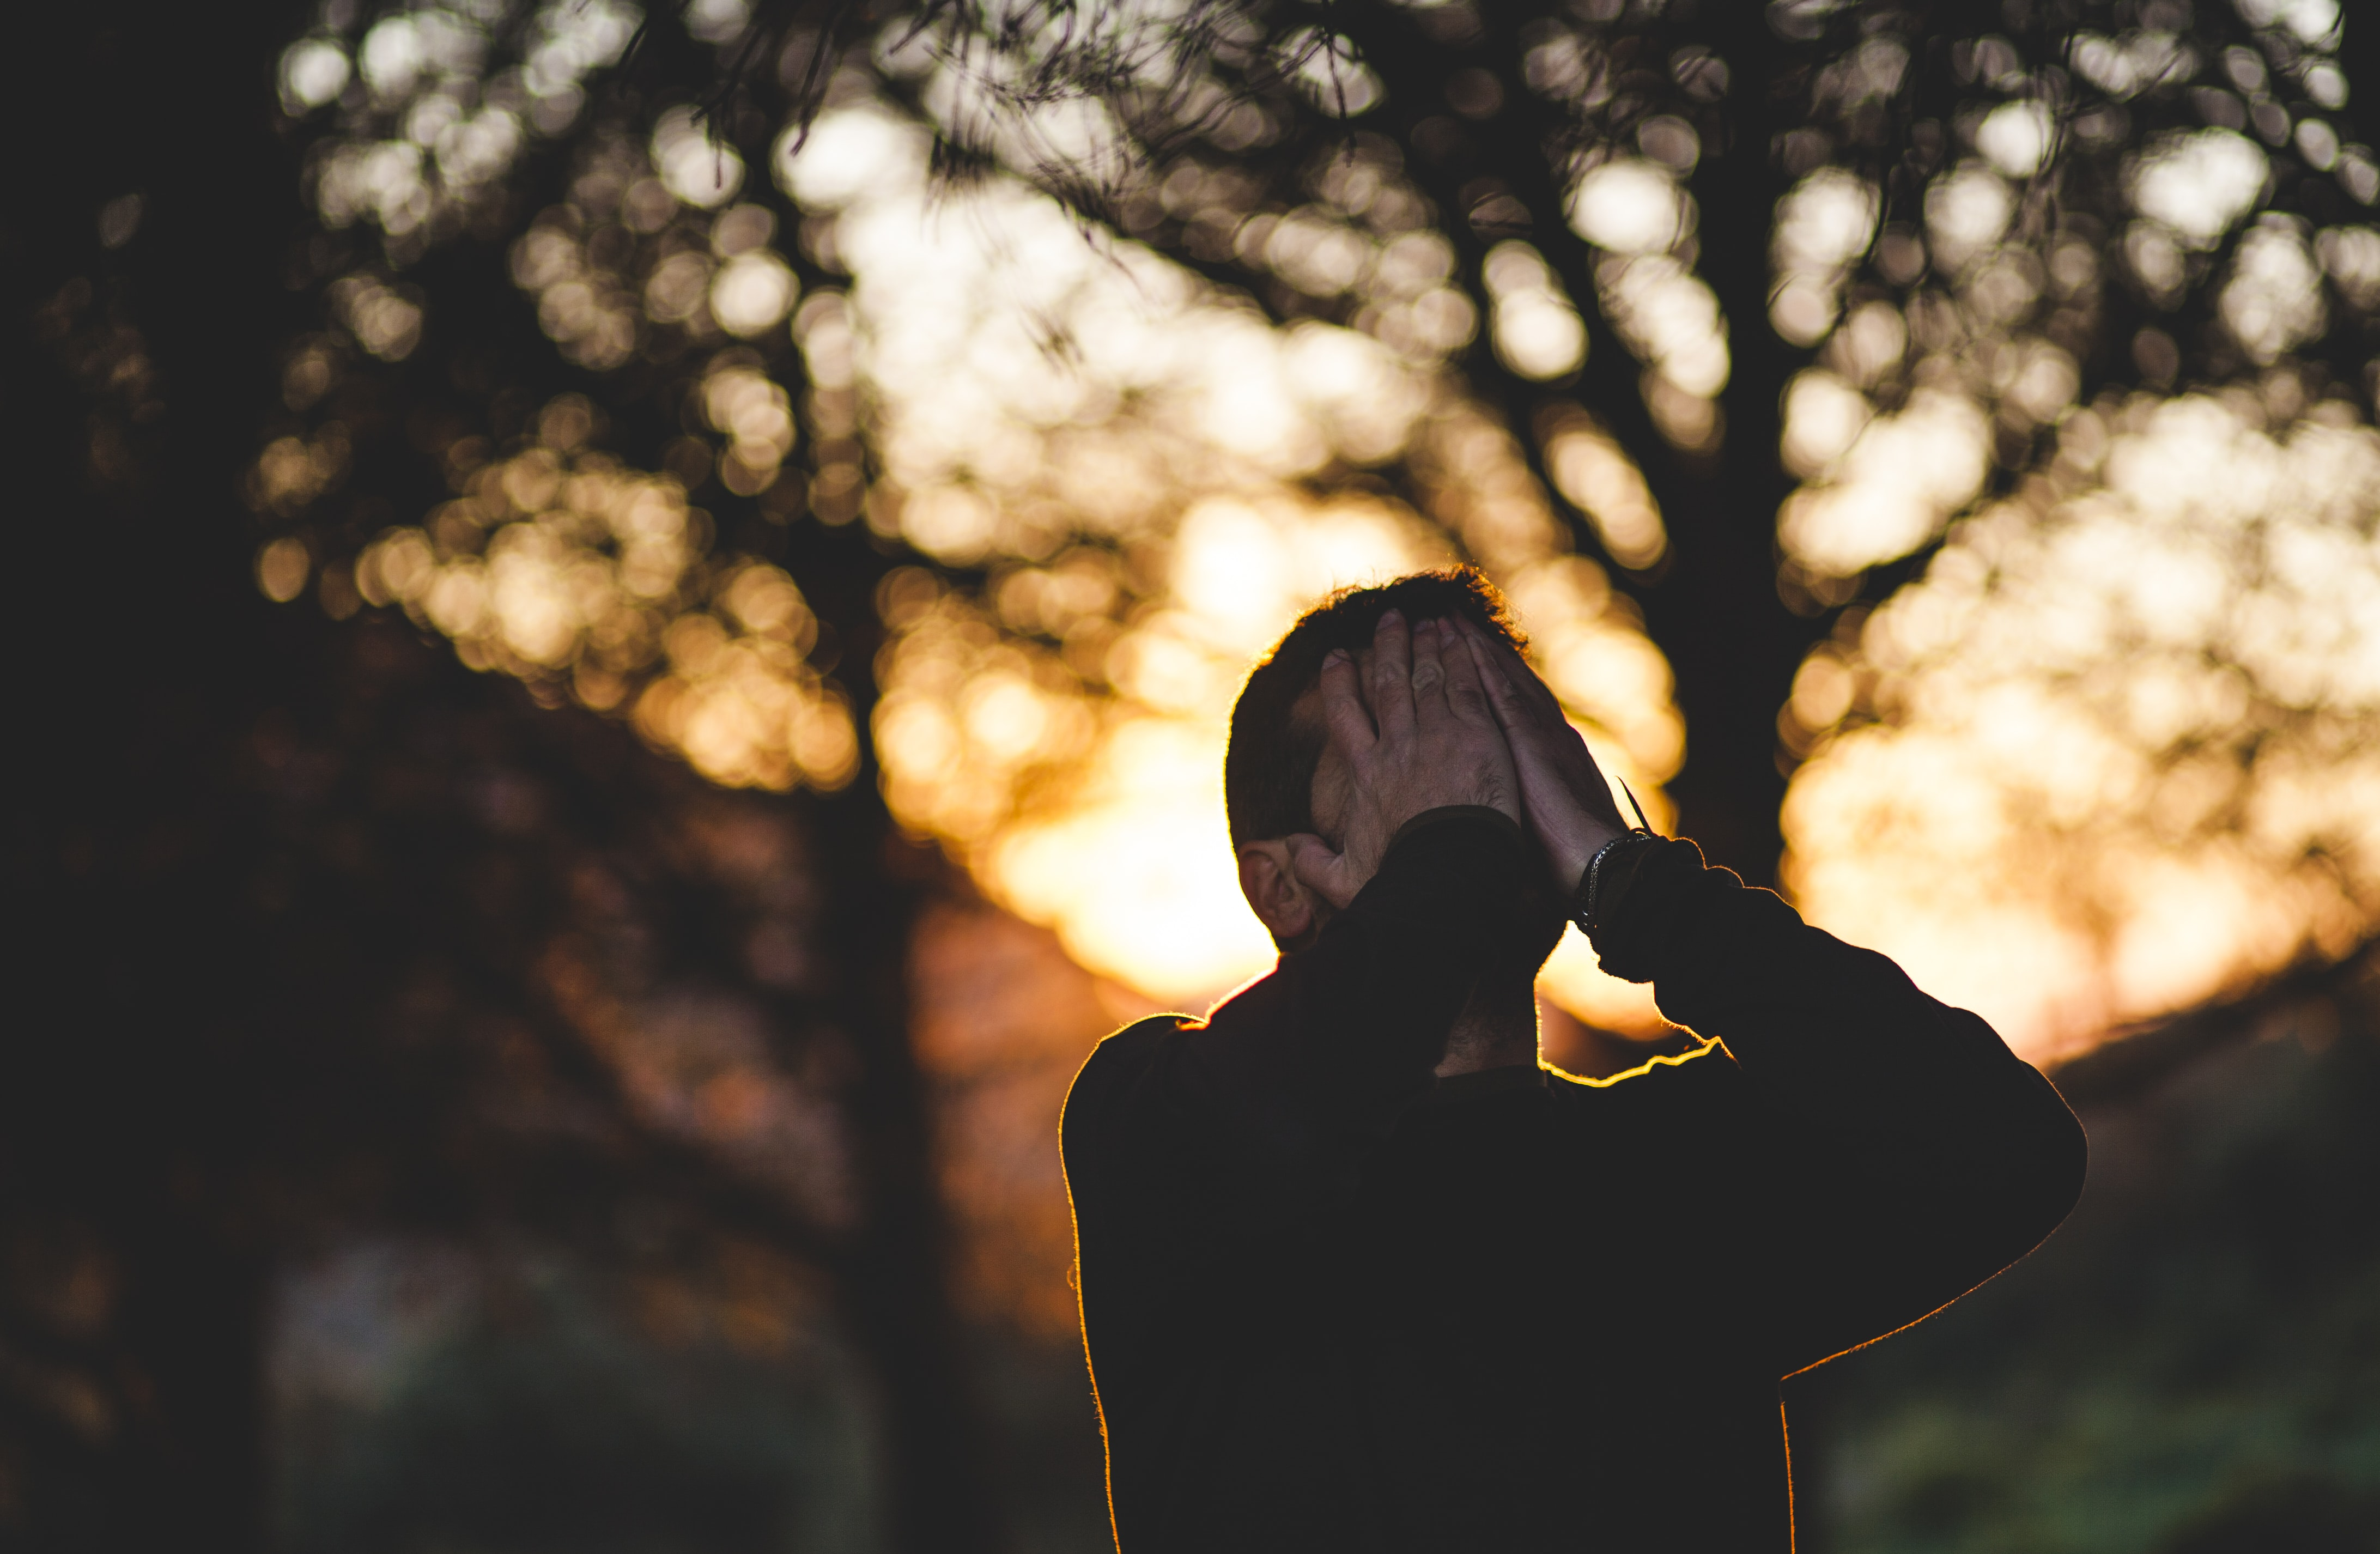 A man holds his hands over his face in front of trees at sunset